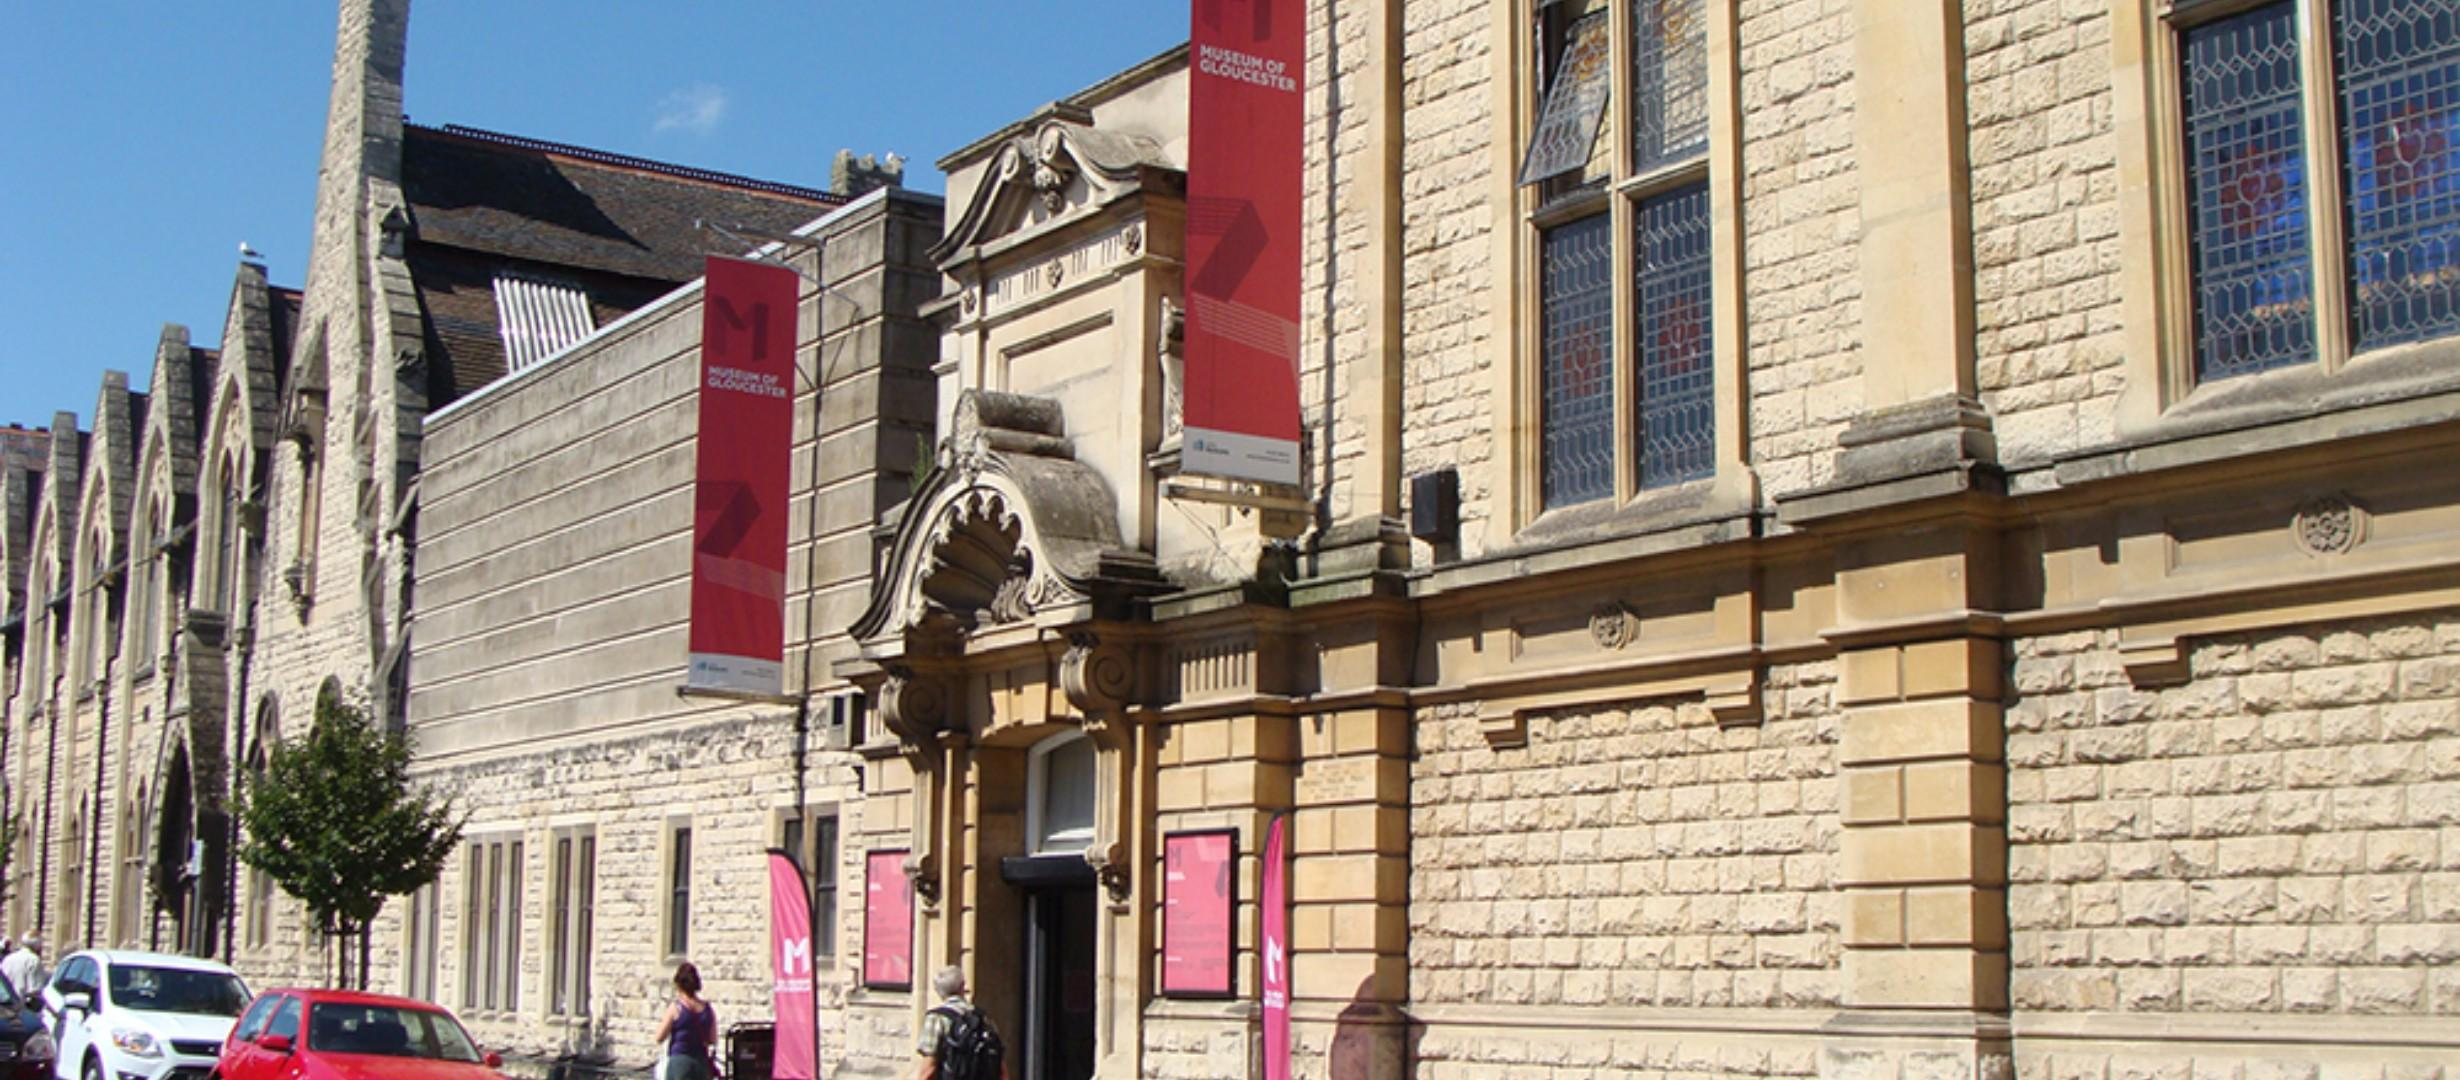 The Museum of Gloucester